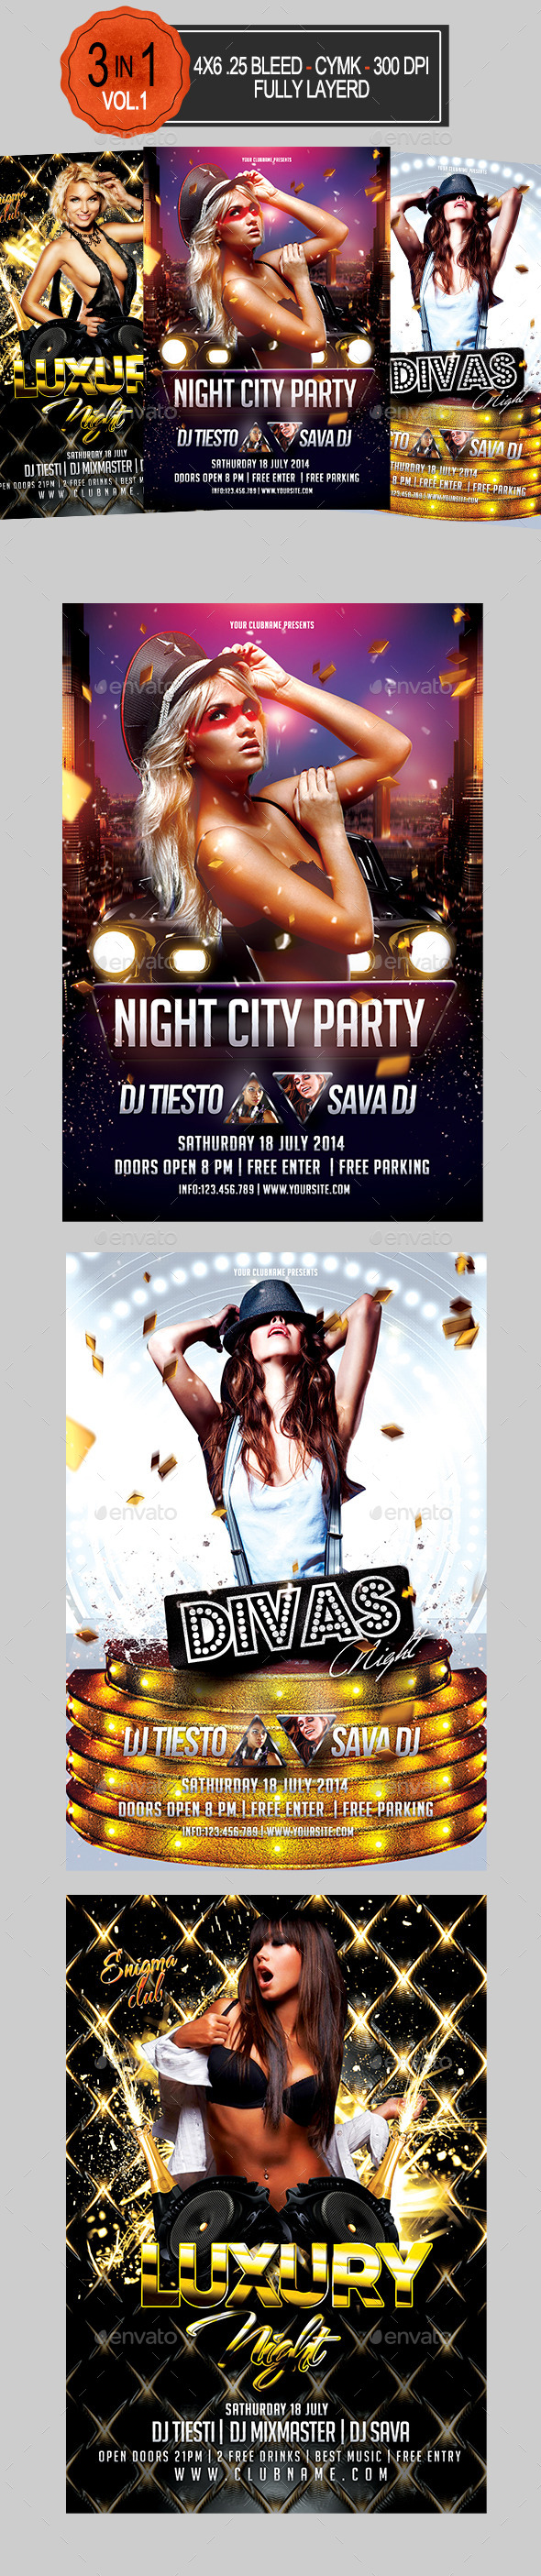 3 in 1 Club Party Flyer Bundle Vol 1   - Clubs & Parties Events